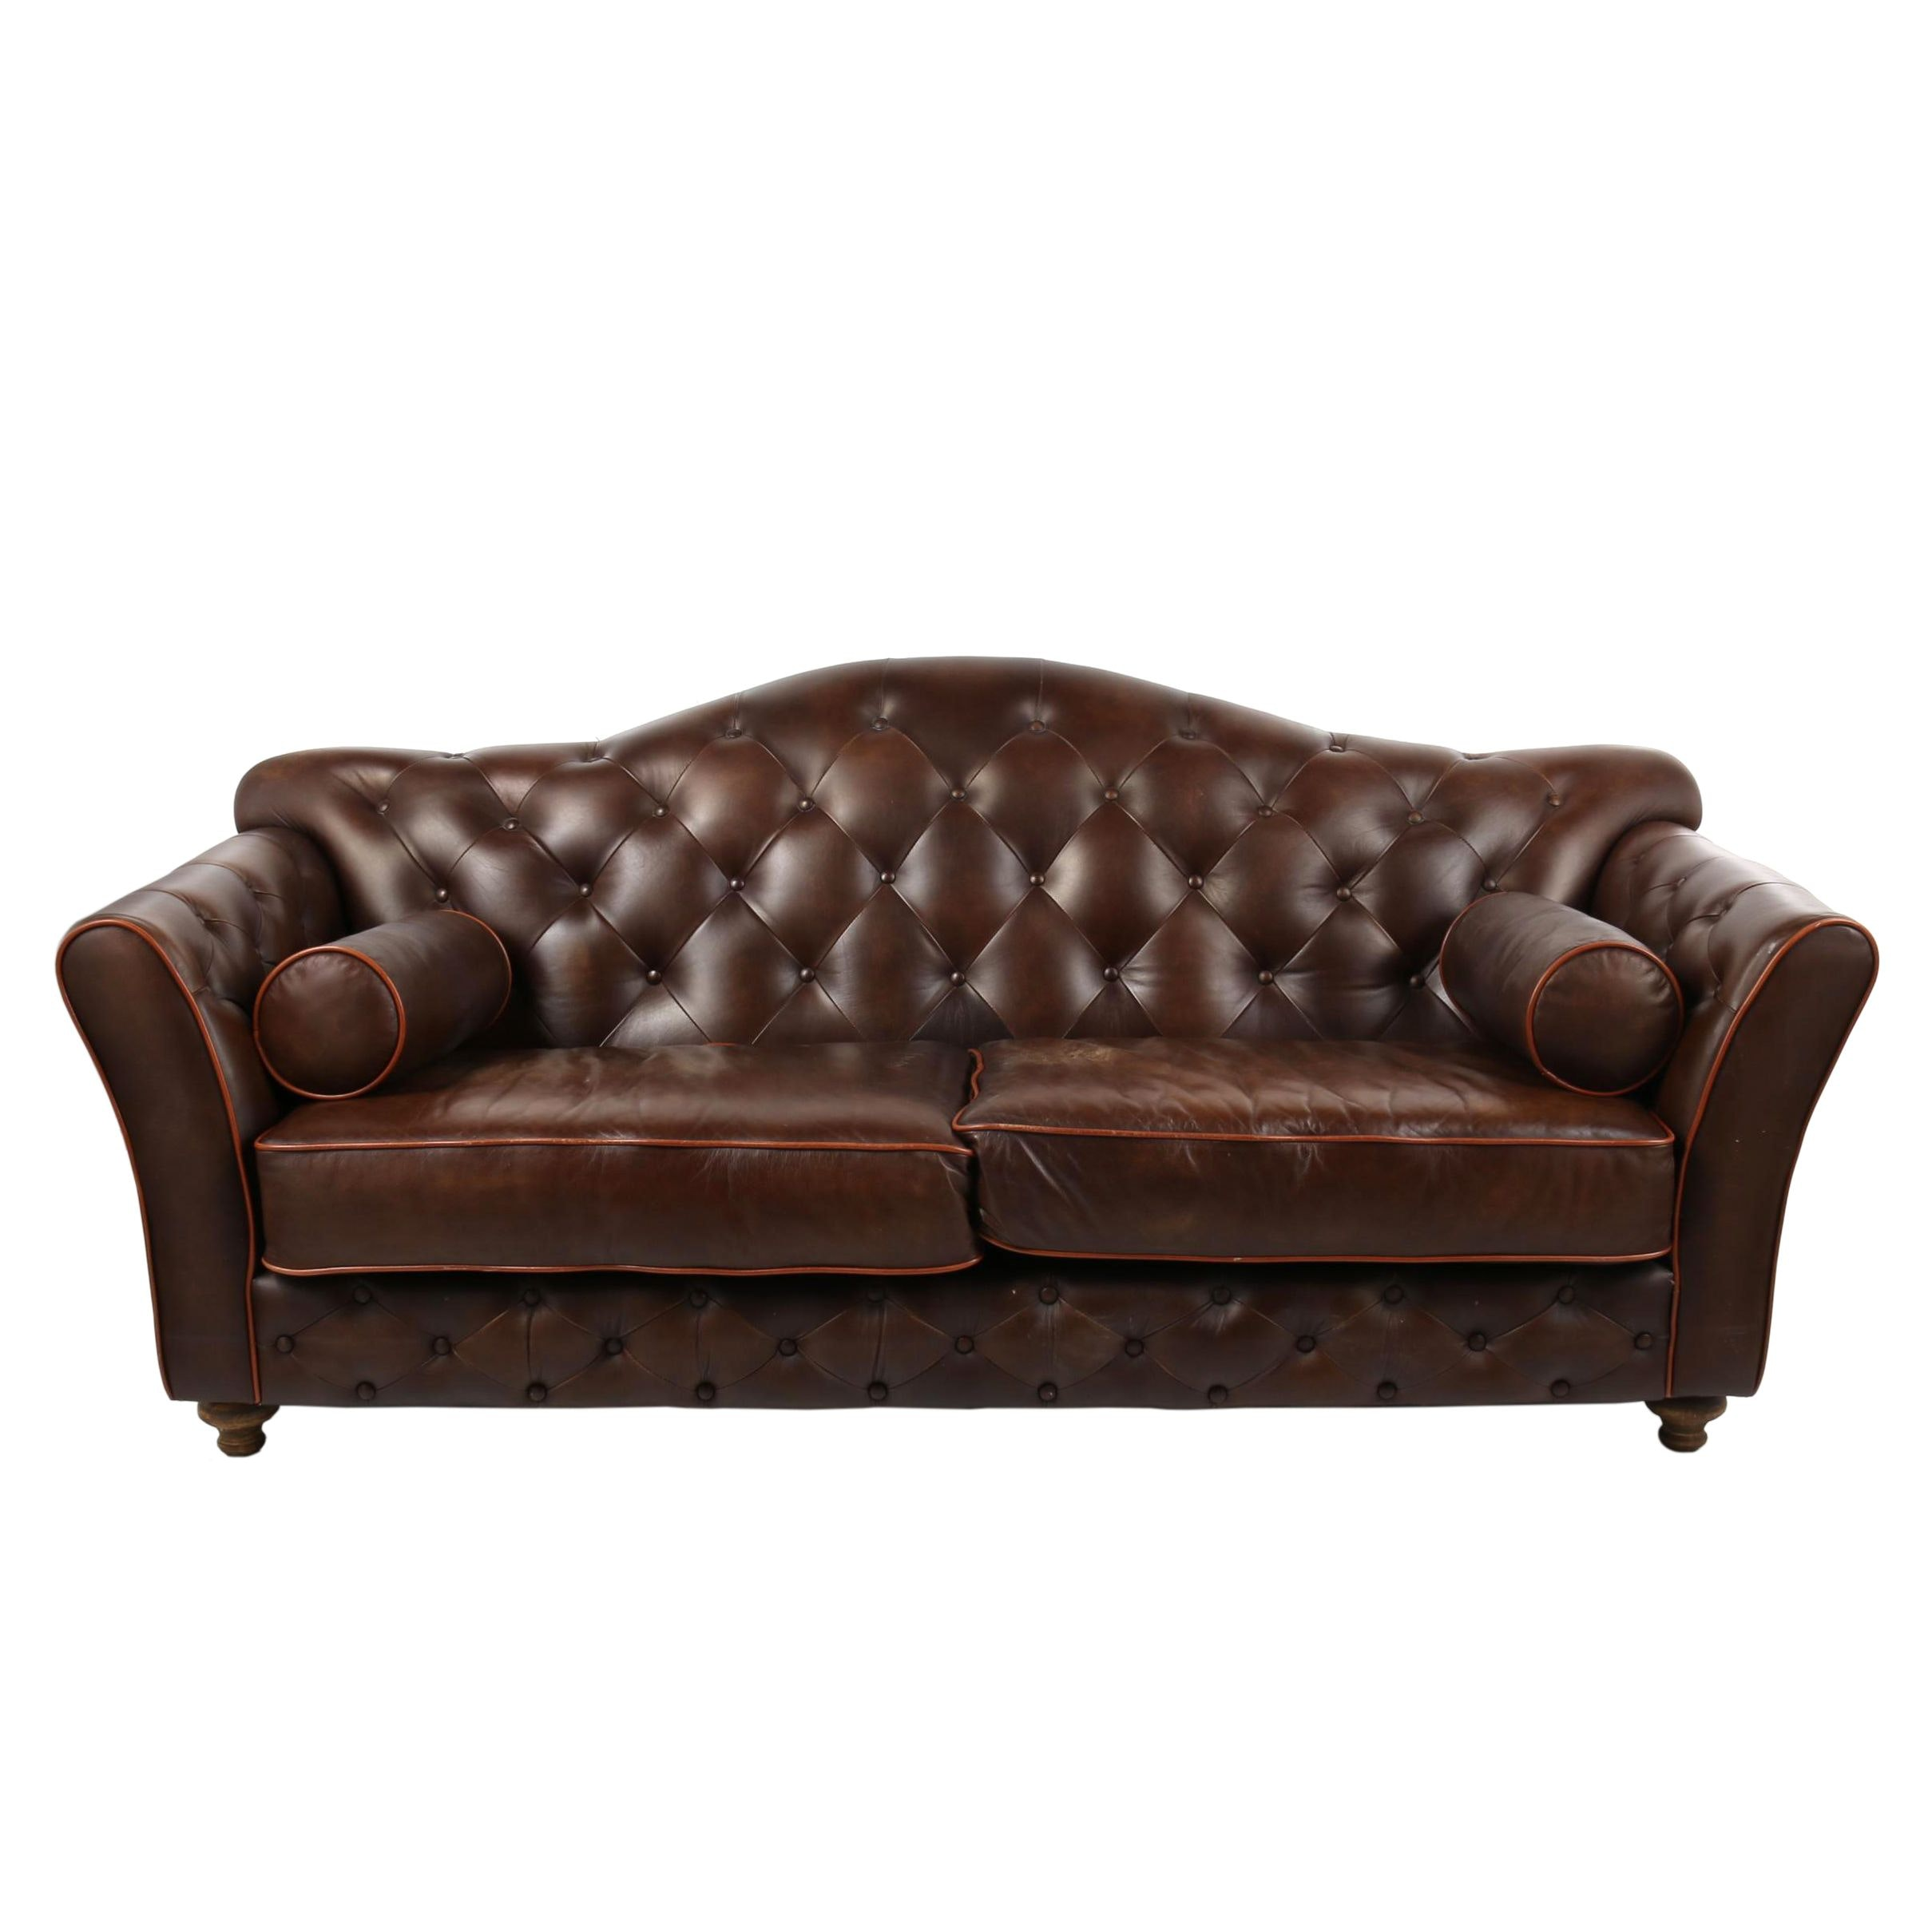 Leather Button-Tufted Sofa, 21st Century